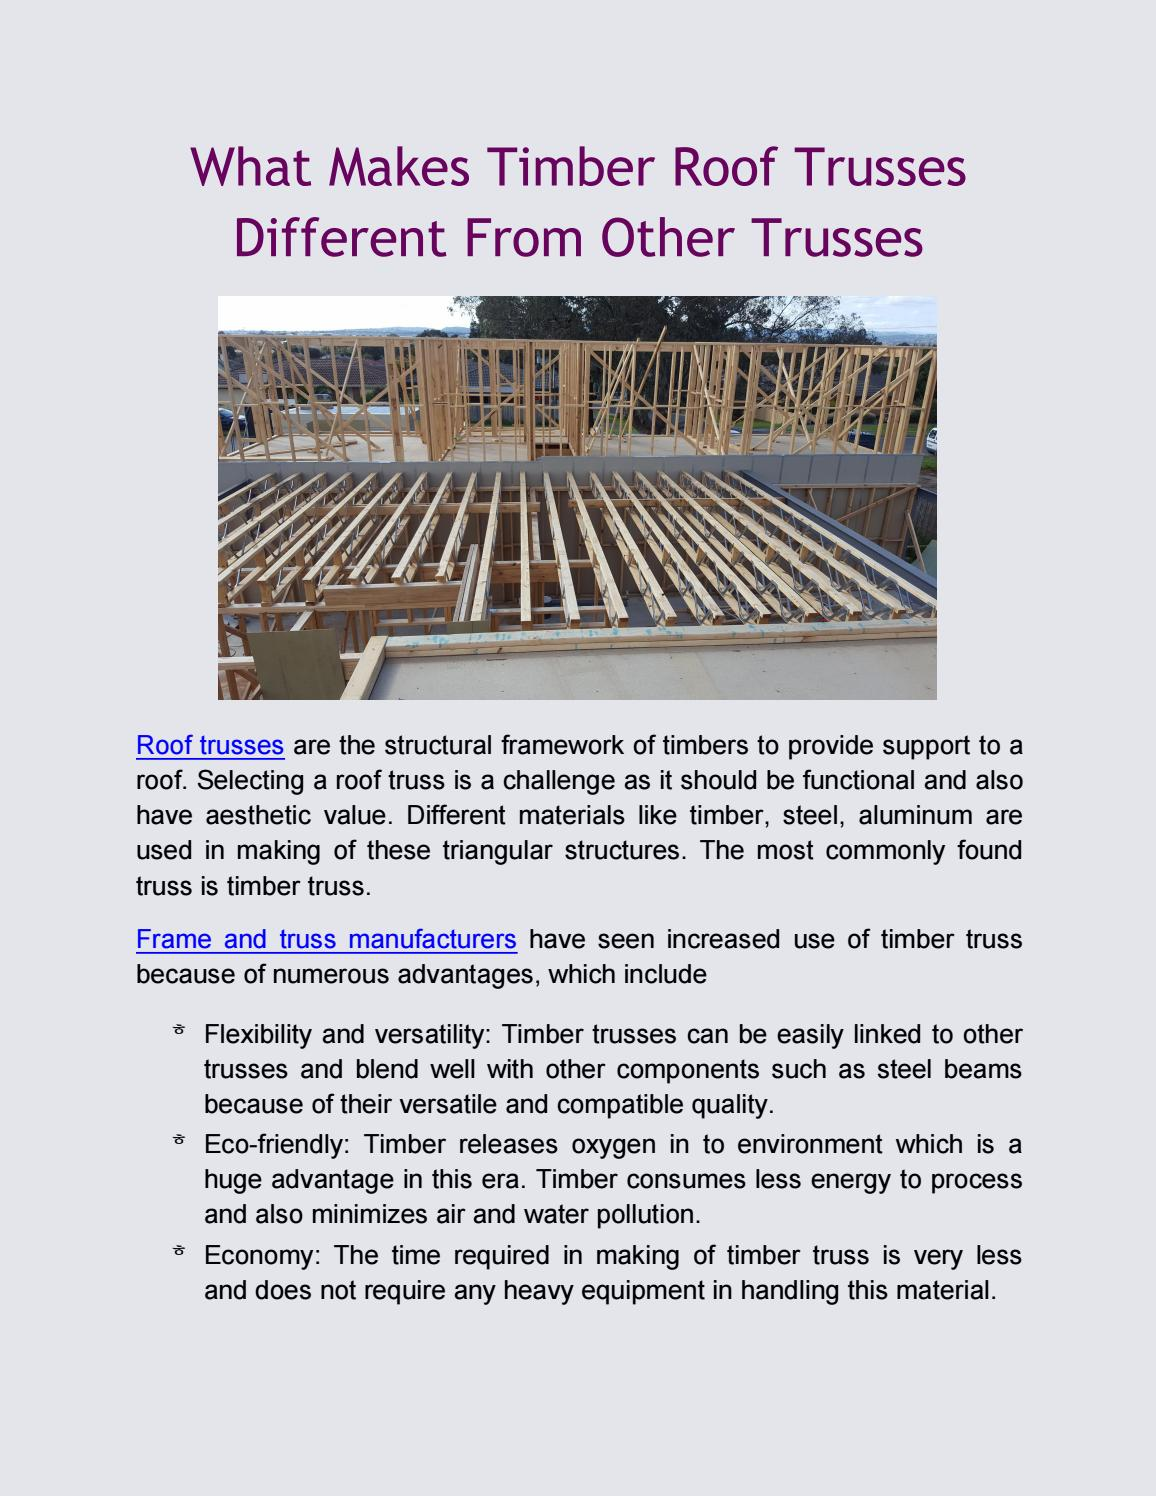 What Makes Timber Roof Trusses Different From Other Trusses By Prefab Frames Hitech Trusses Issuu